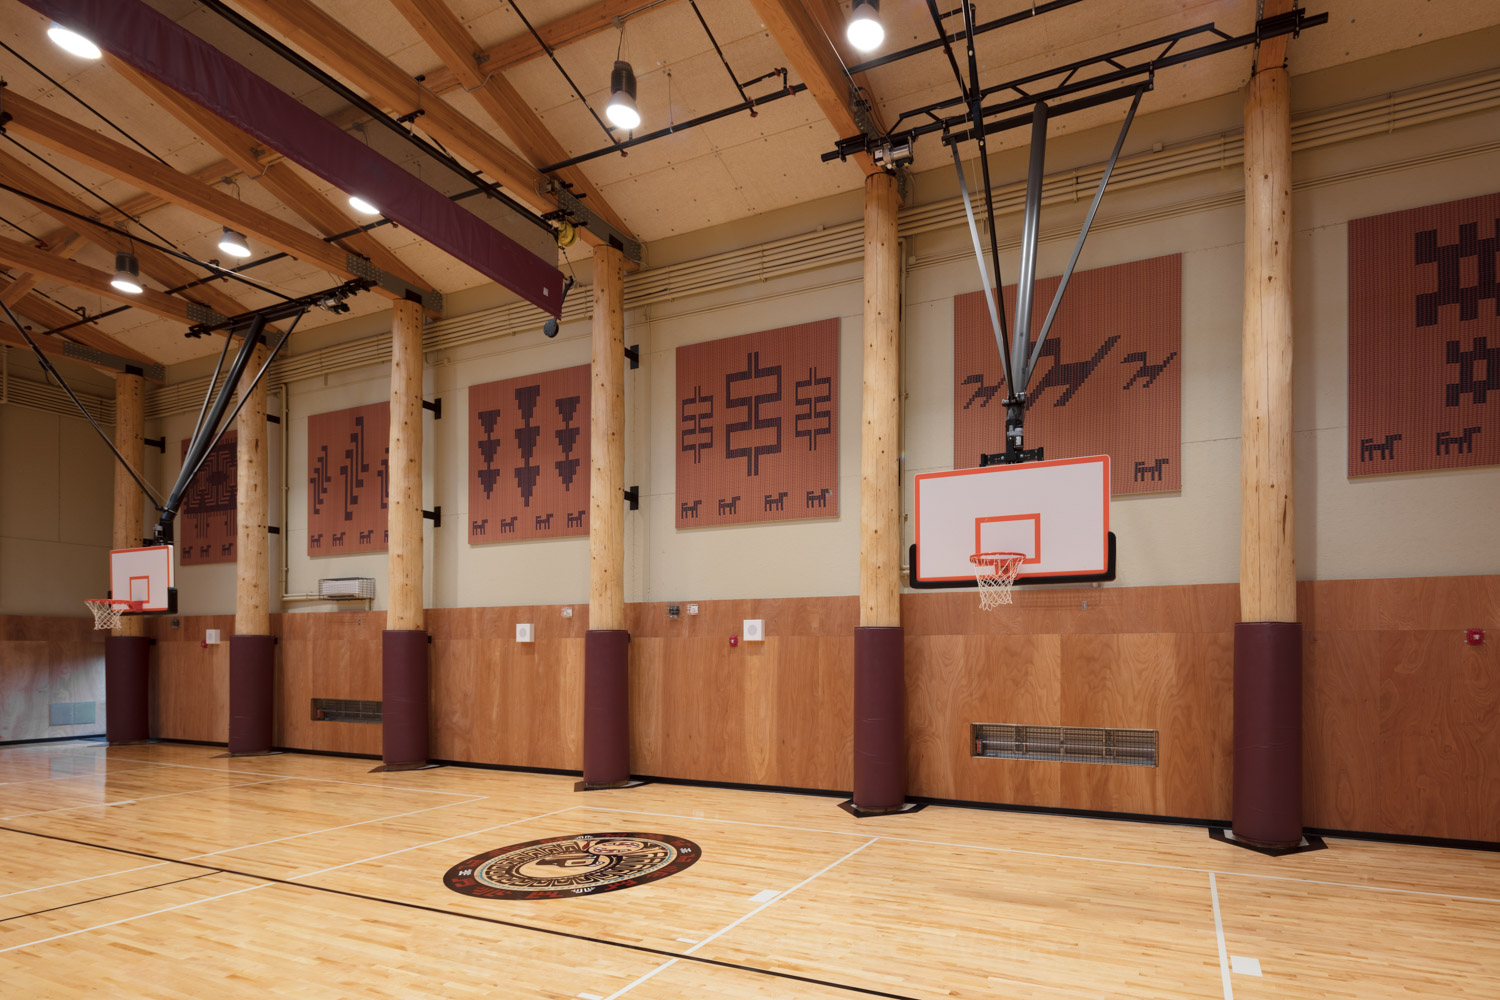 A tournament size gymnasium serves to bring regional tournaments and communities together during holidays, funerals, and large cultural celebrations.